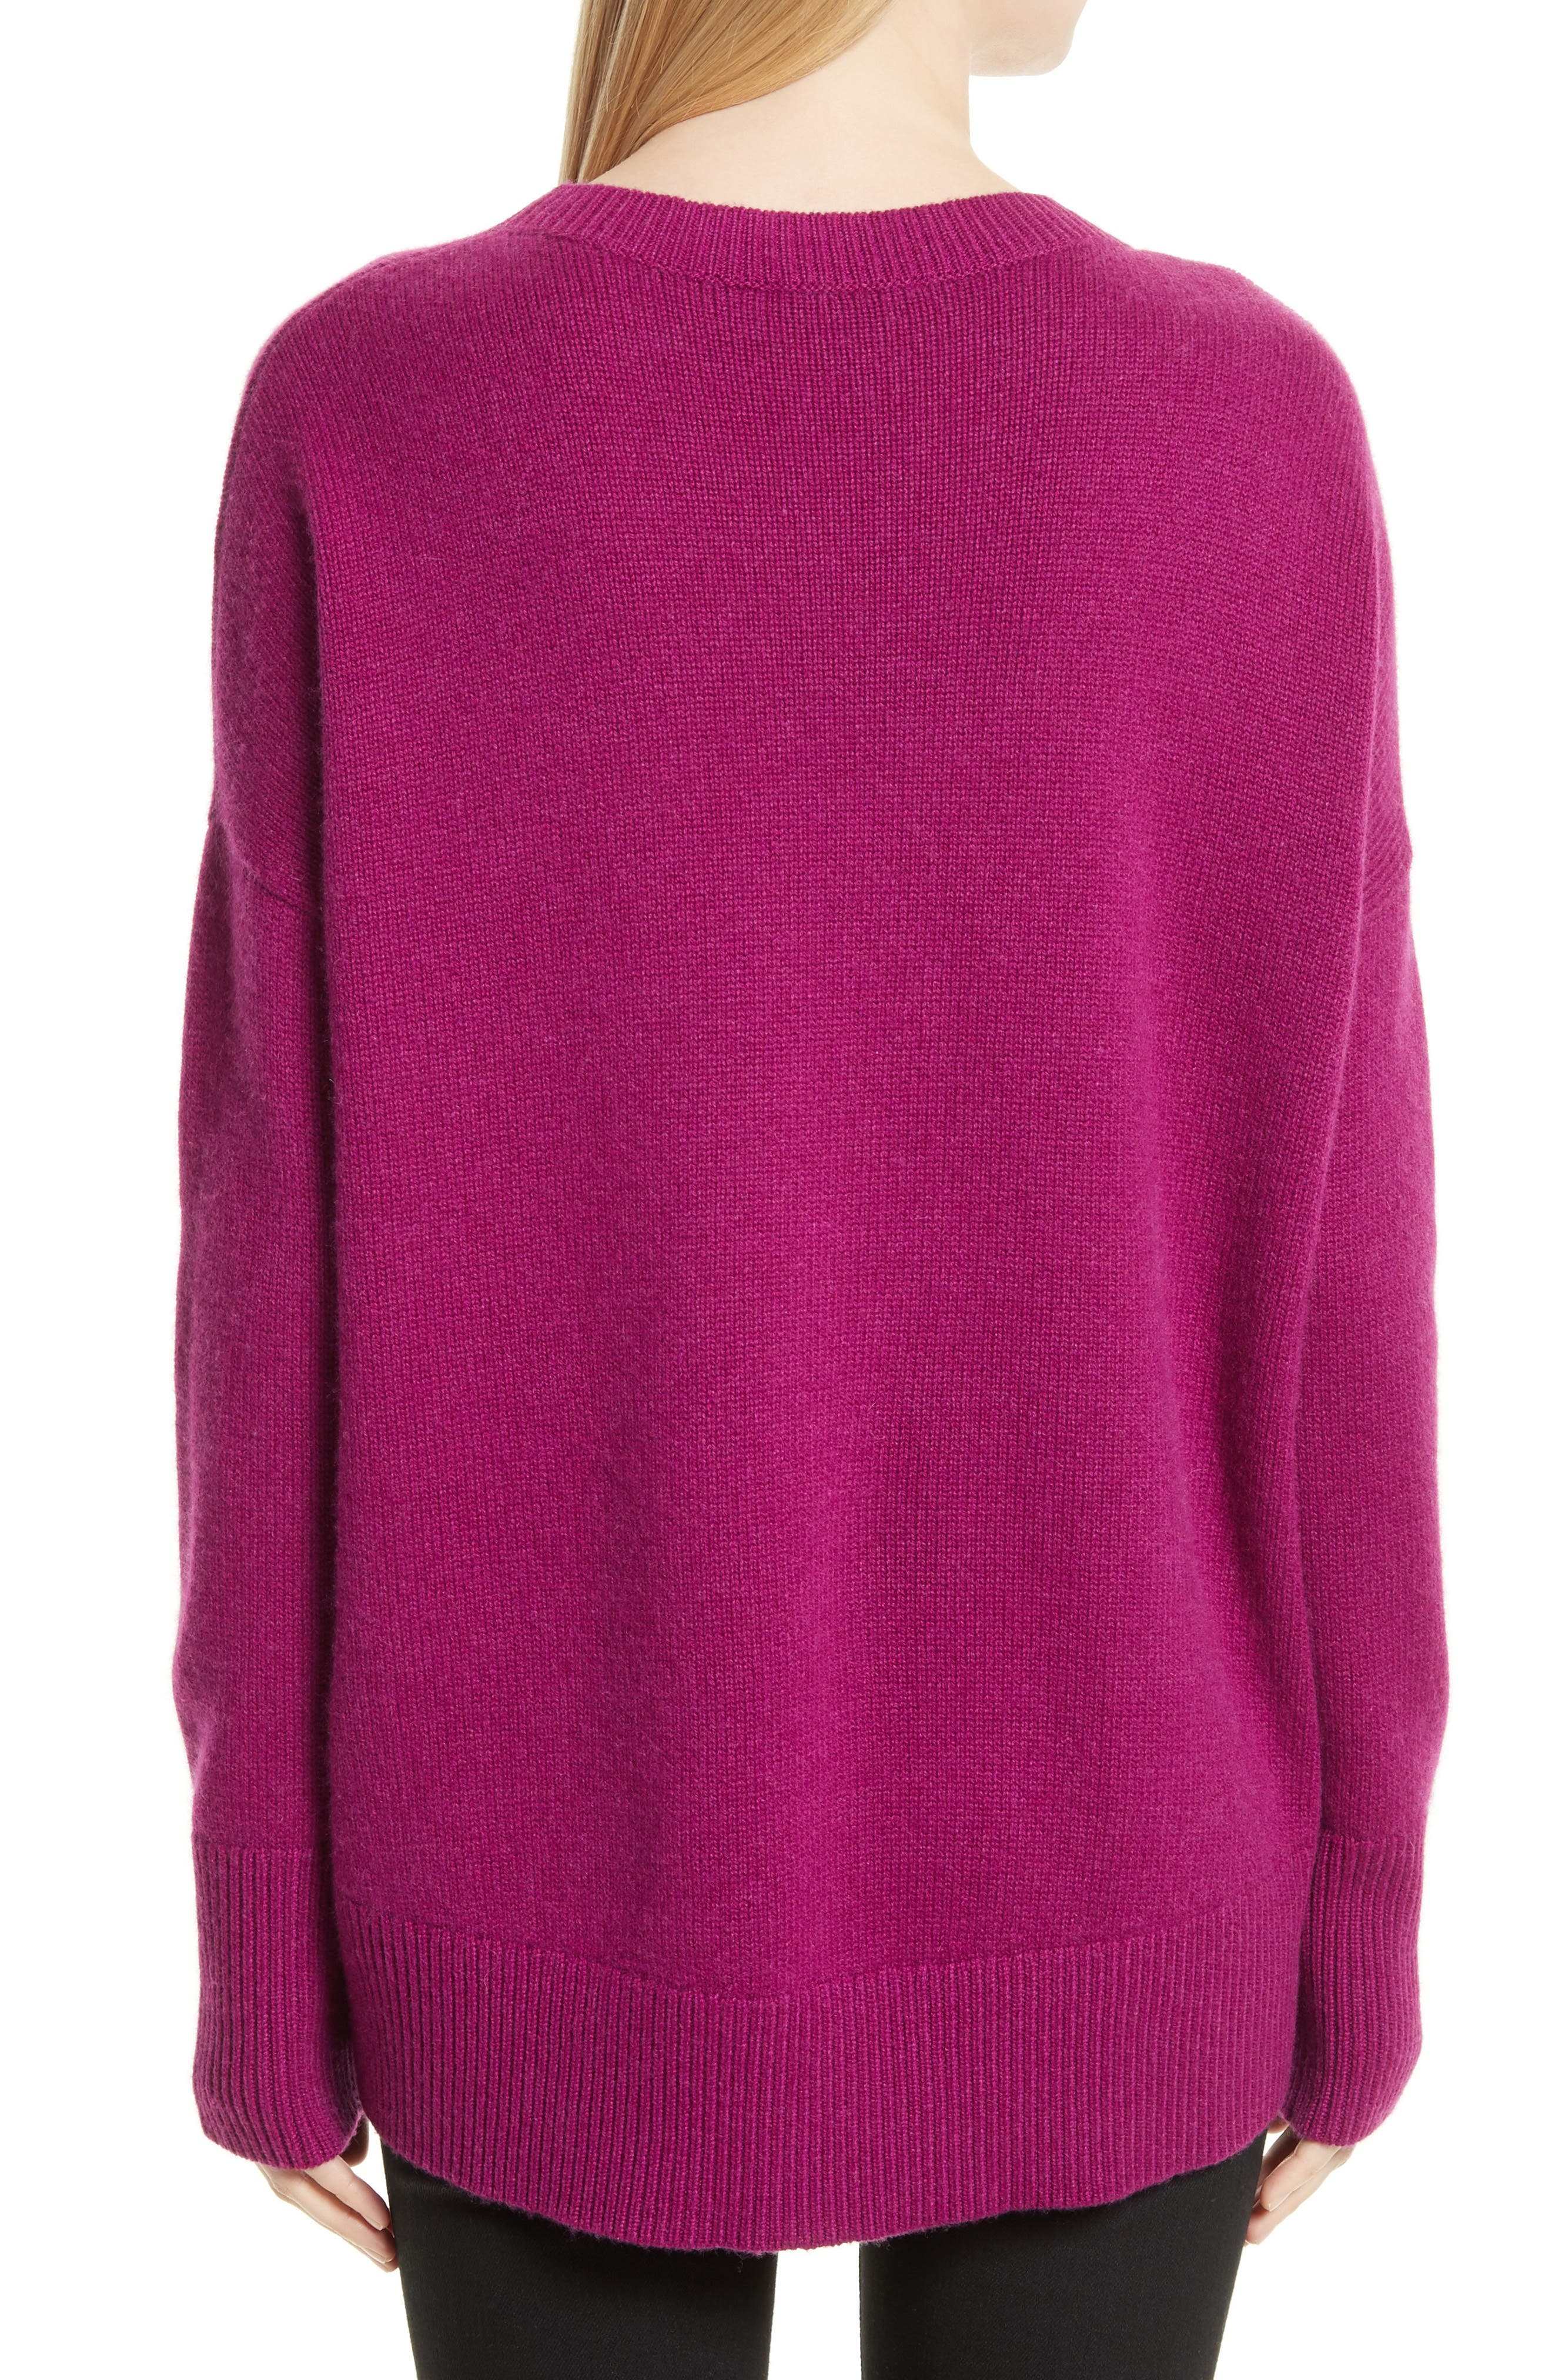 Karenia R Cashmere Sweater,                             Alternate thumbnail 2, color,                             Fuschia